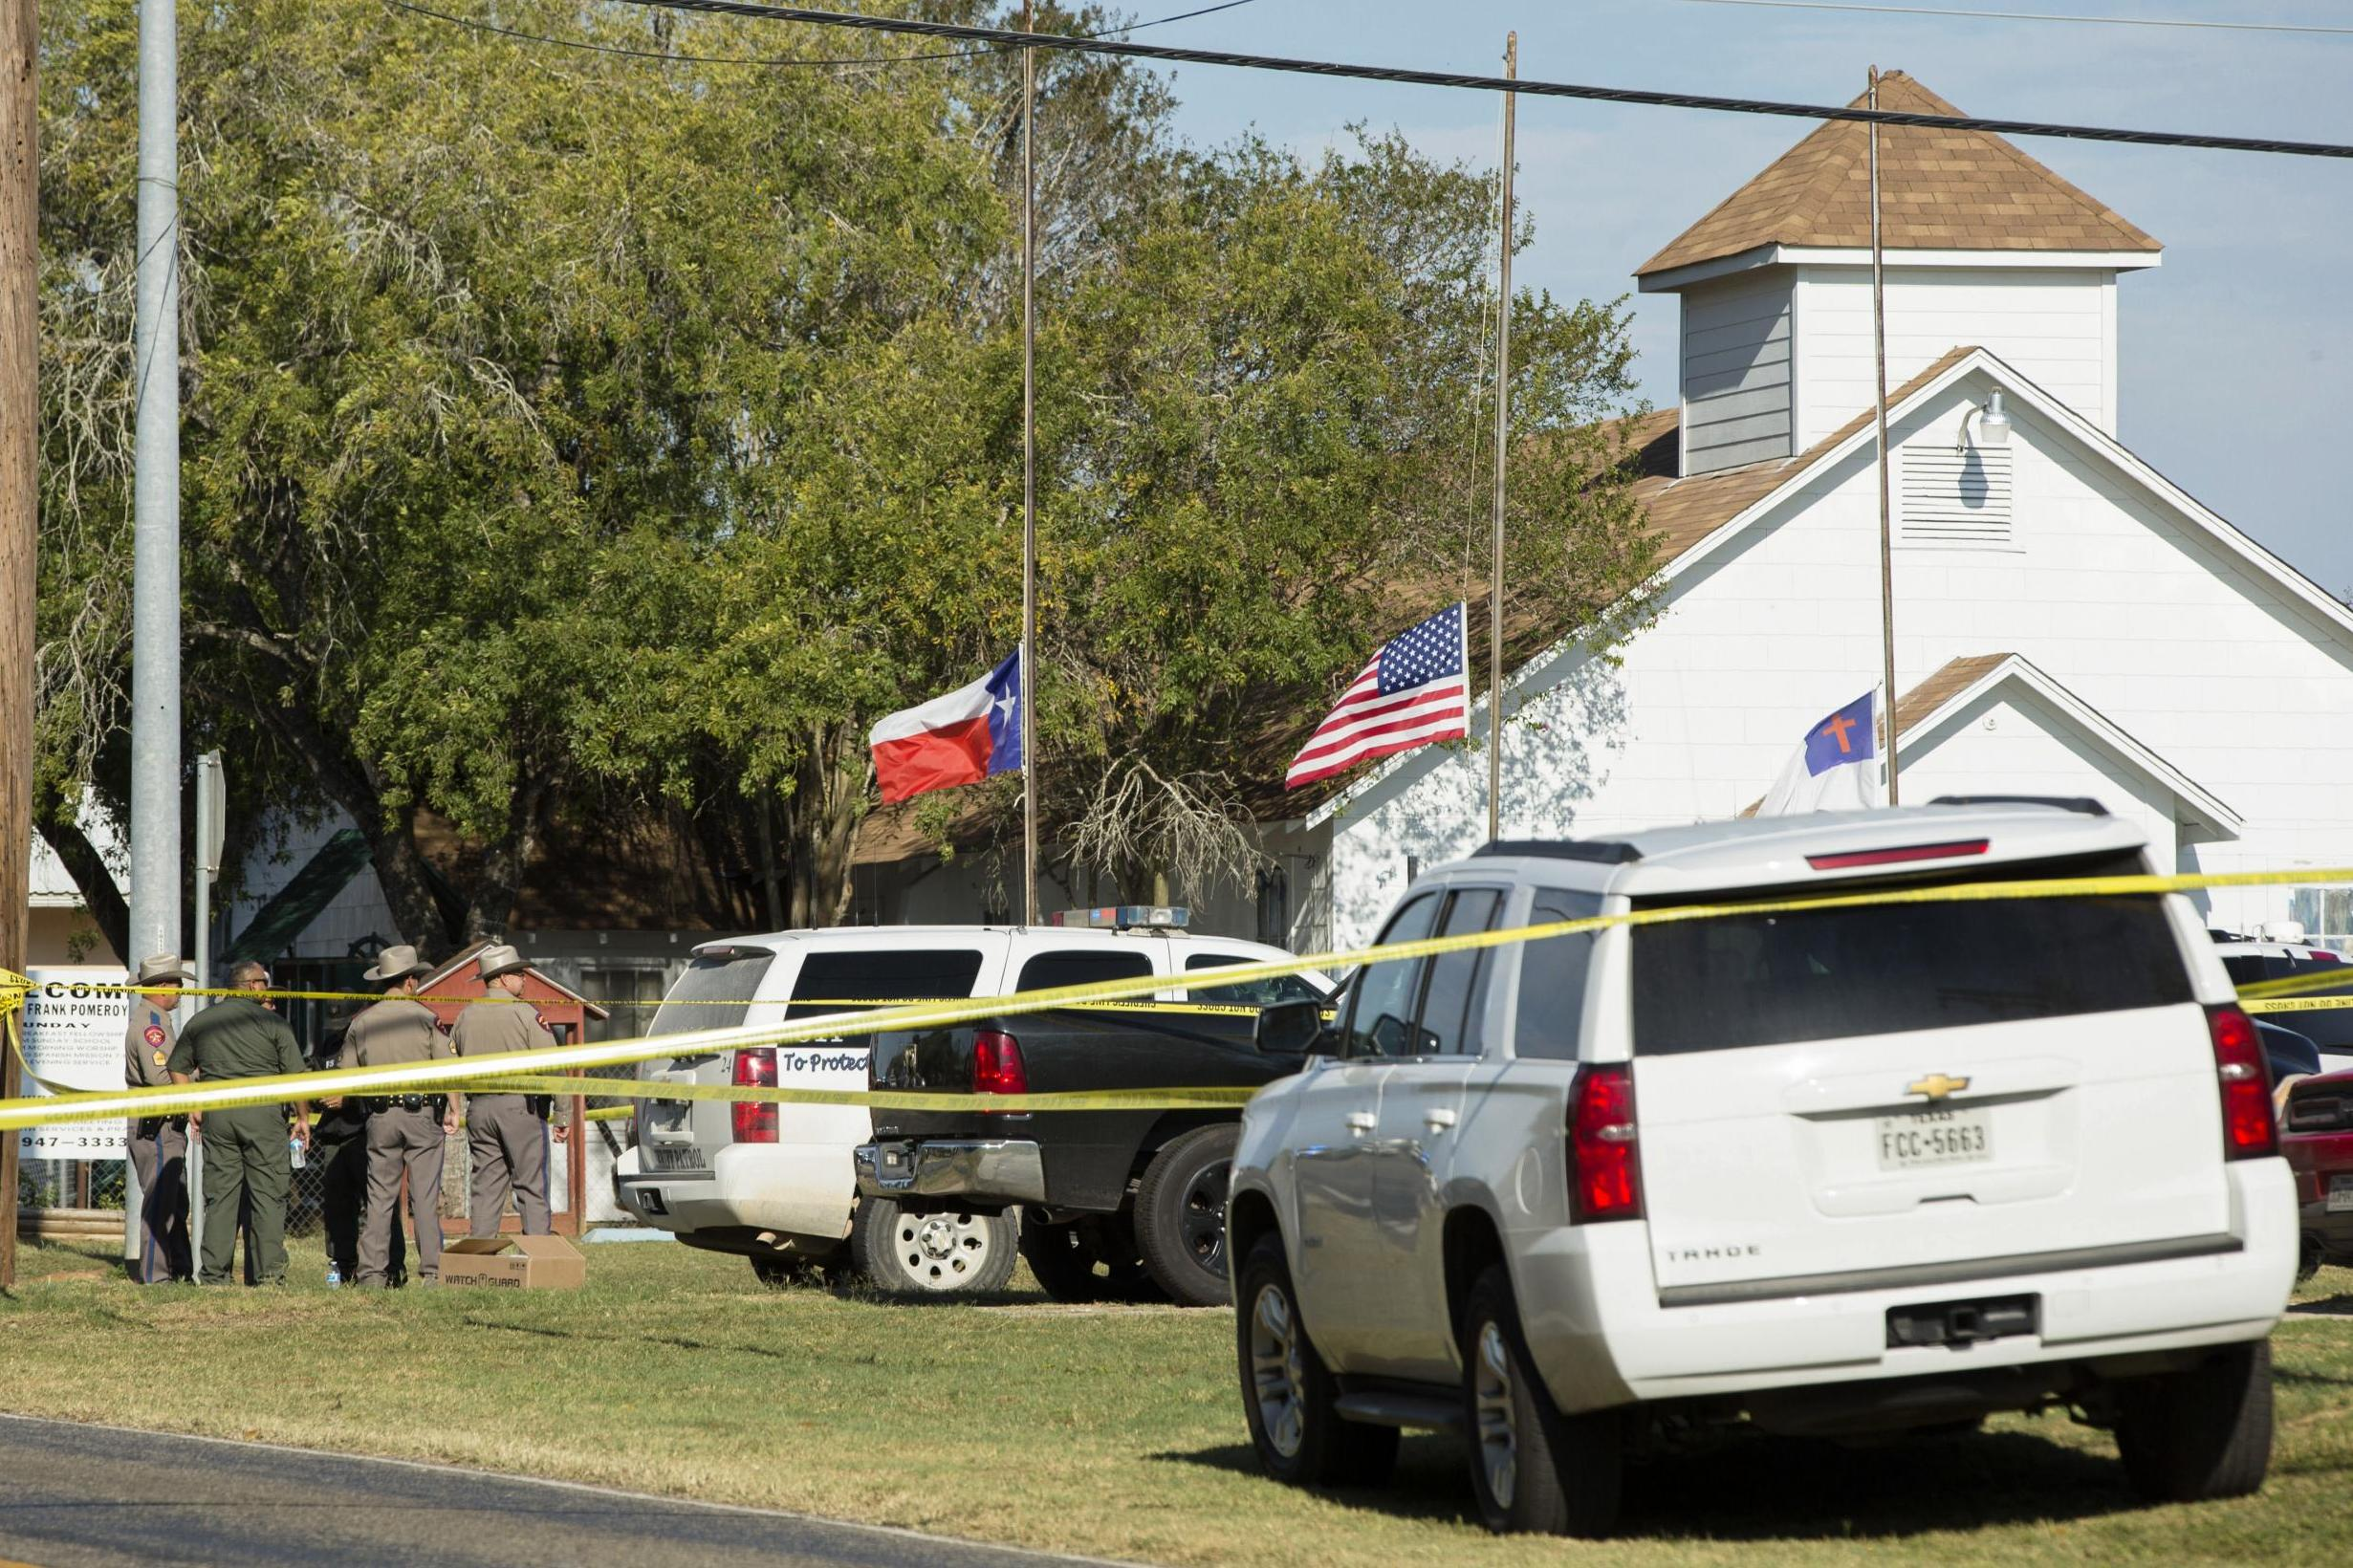 Texas shooting: Hero plumber who chased gunman says he 'needed to be stopped' | The Independentindependent_brand_ident_LOGOUntitled